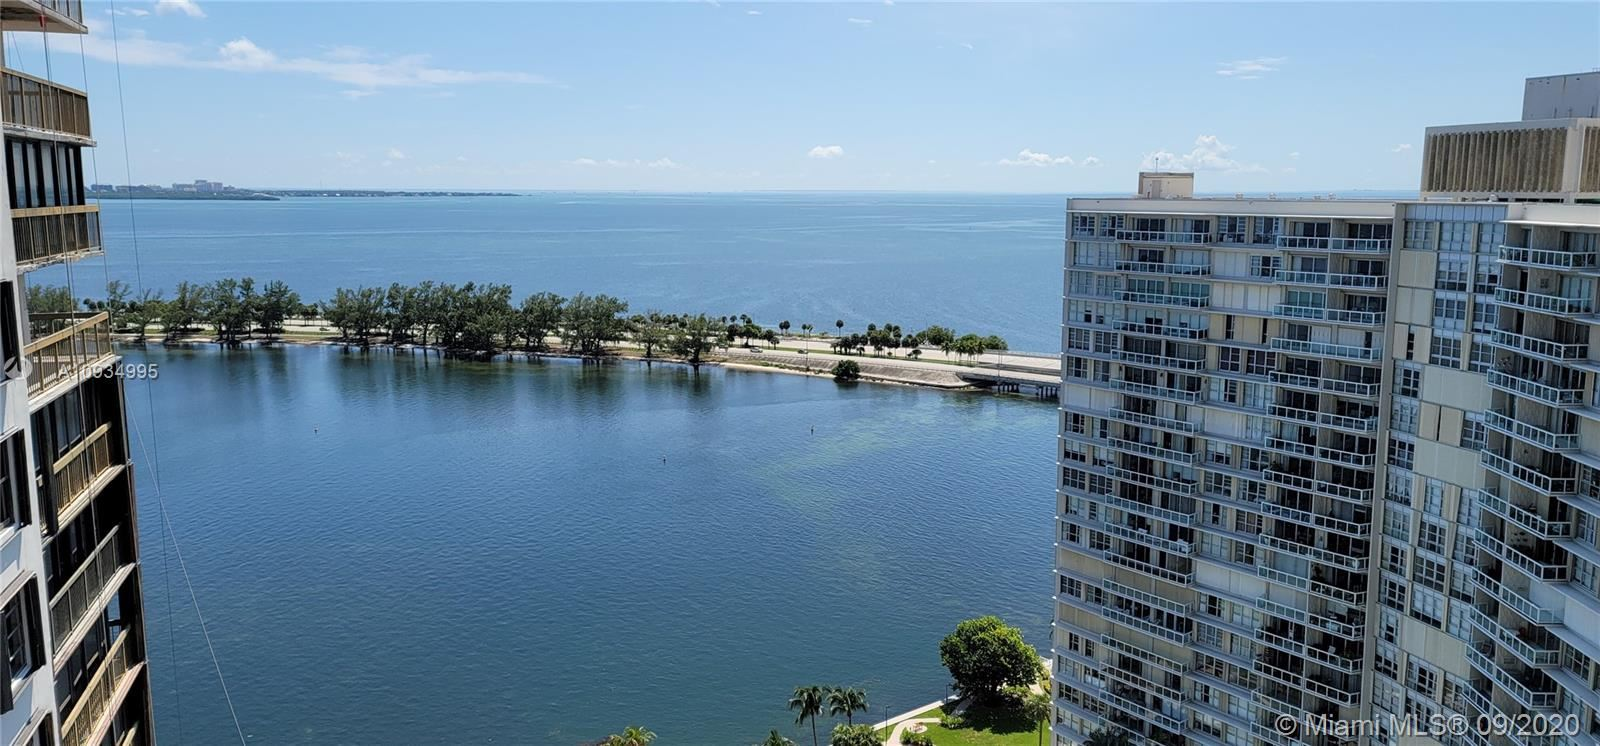 2333 Brickell Ave #2512, Miami, FL 33129 - #: A10934995